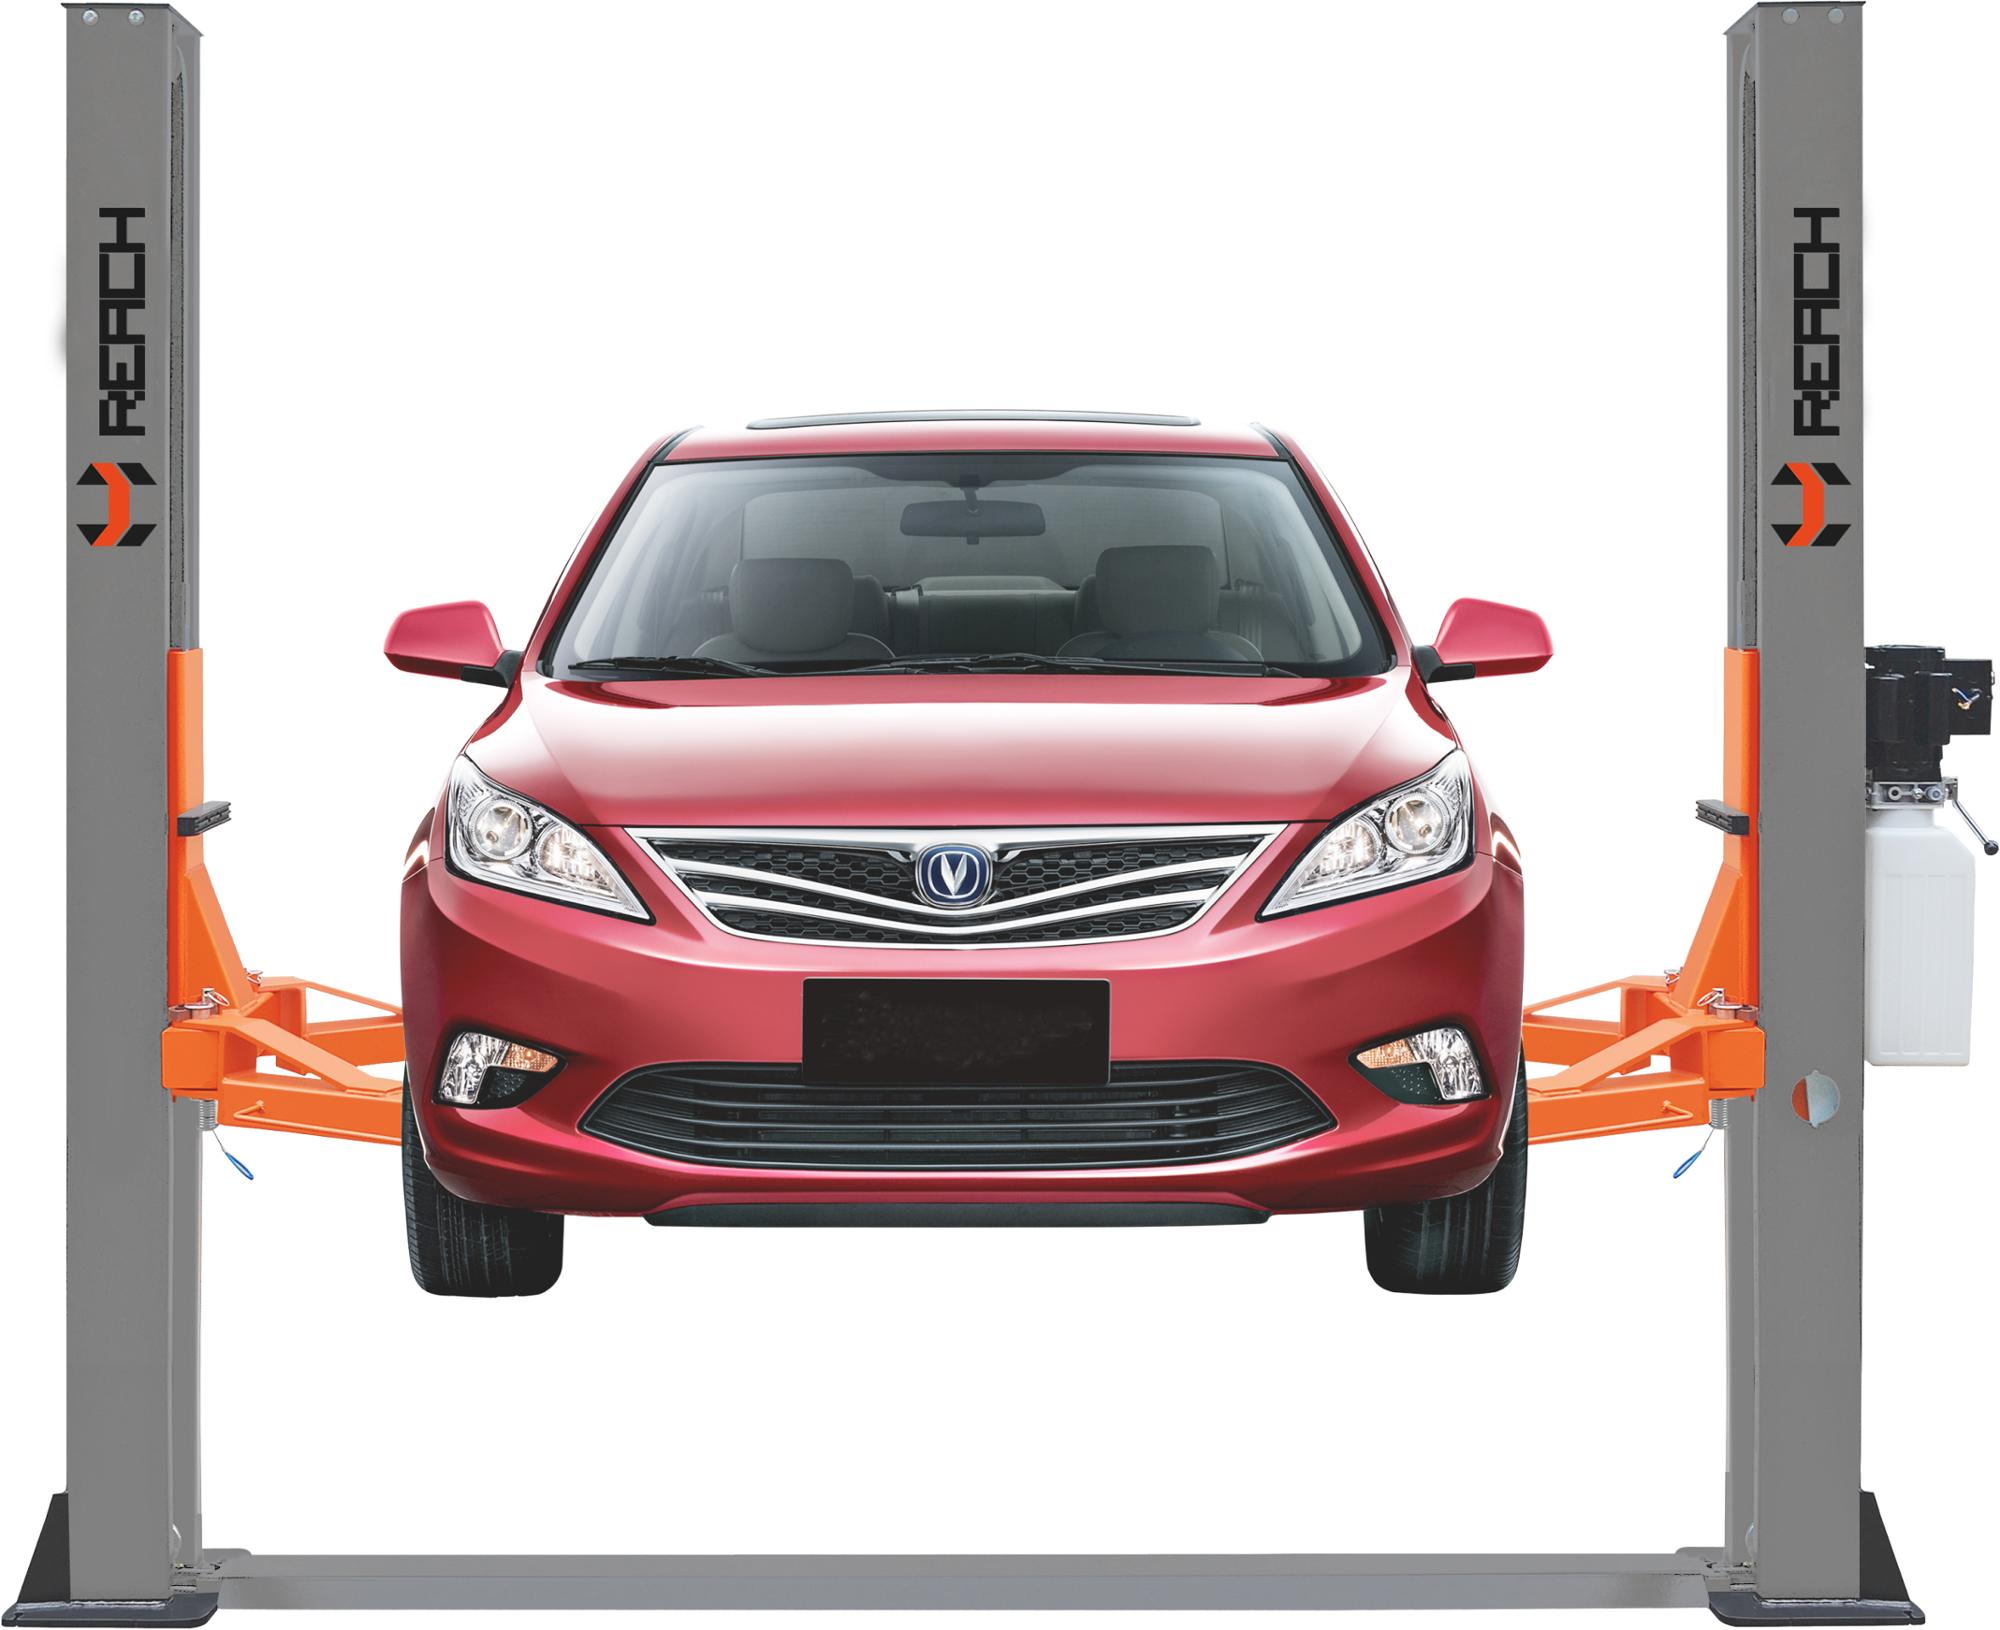 RH-B4000 2 Post Car Lift / Car Hoist/ Hydraulic Car Lift Featured Image